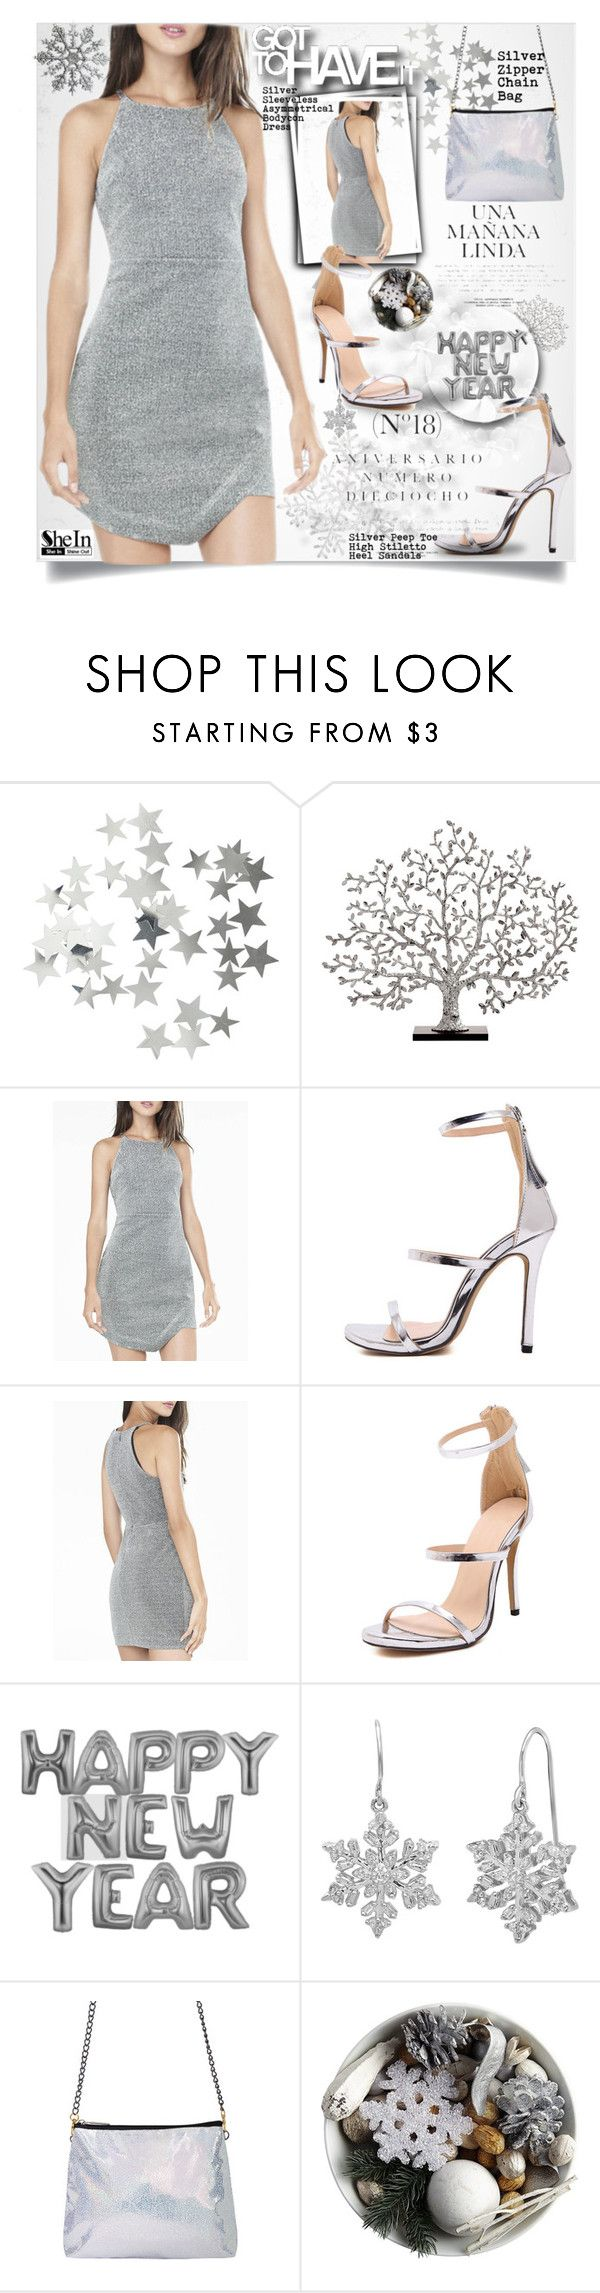 """""""SheIn Silver Outfit"""" by lillili25 ❤ liked on Polyvore featuring H&M, Michael Aram, Sinclair, Amanda Rose Collection, Sheinside, polyvoreeditorial and shein"""